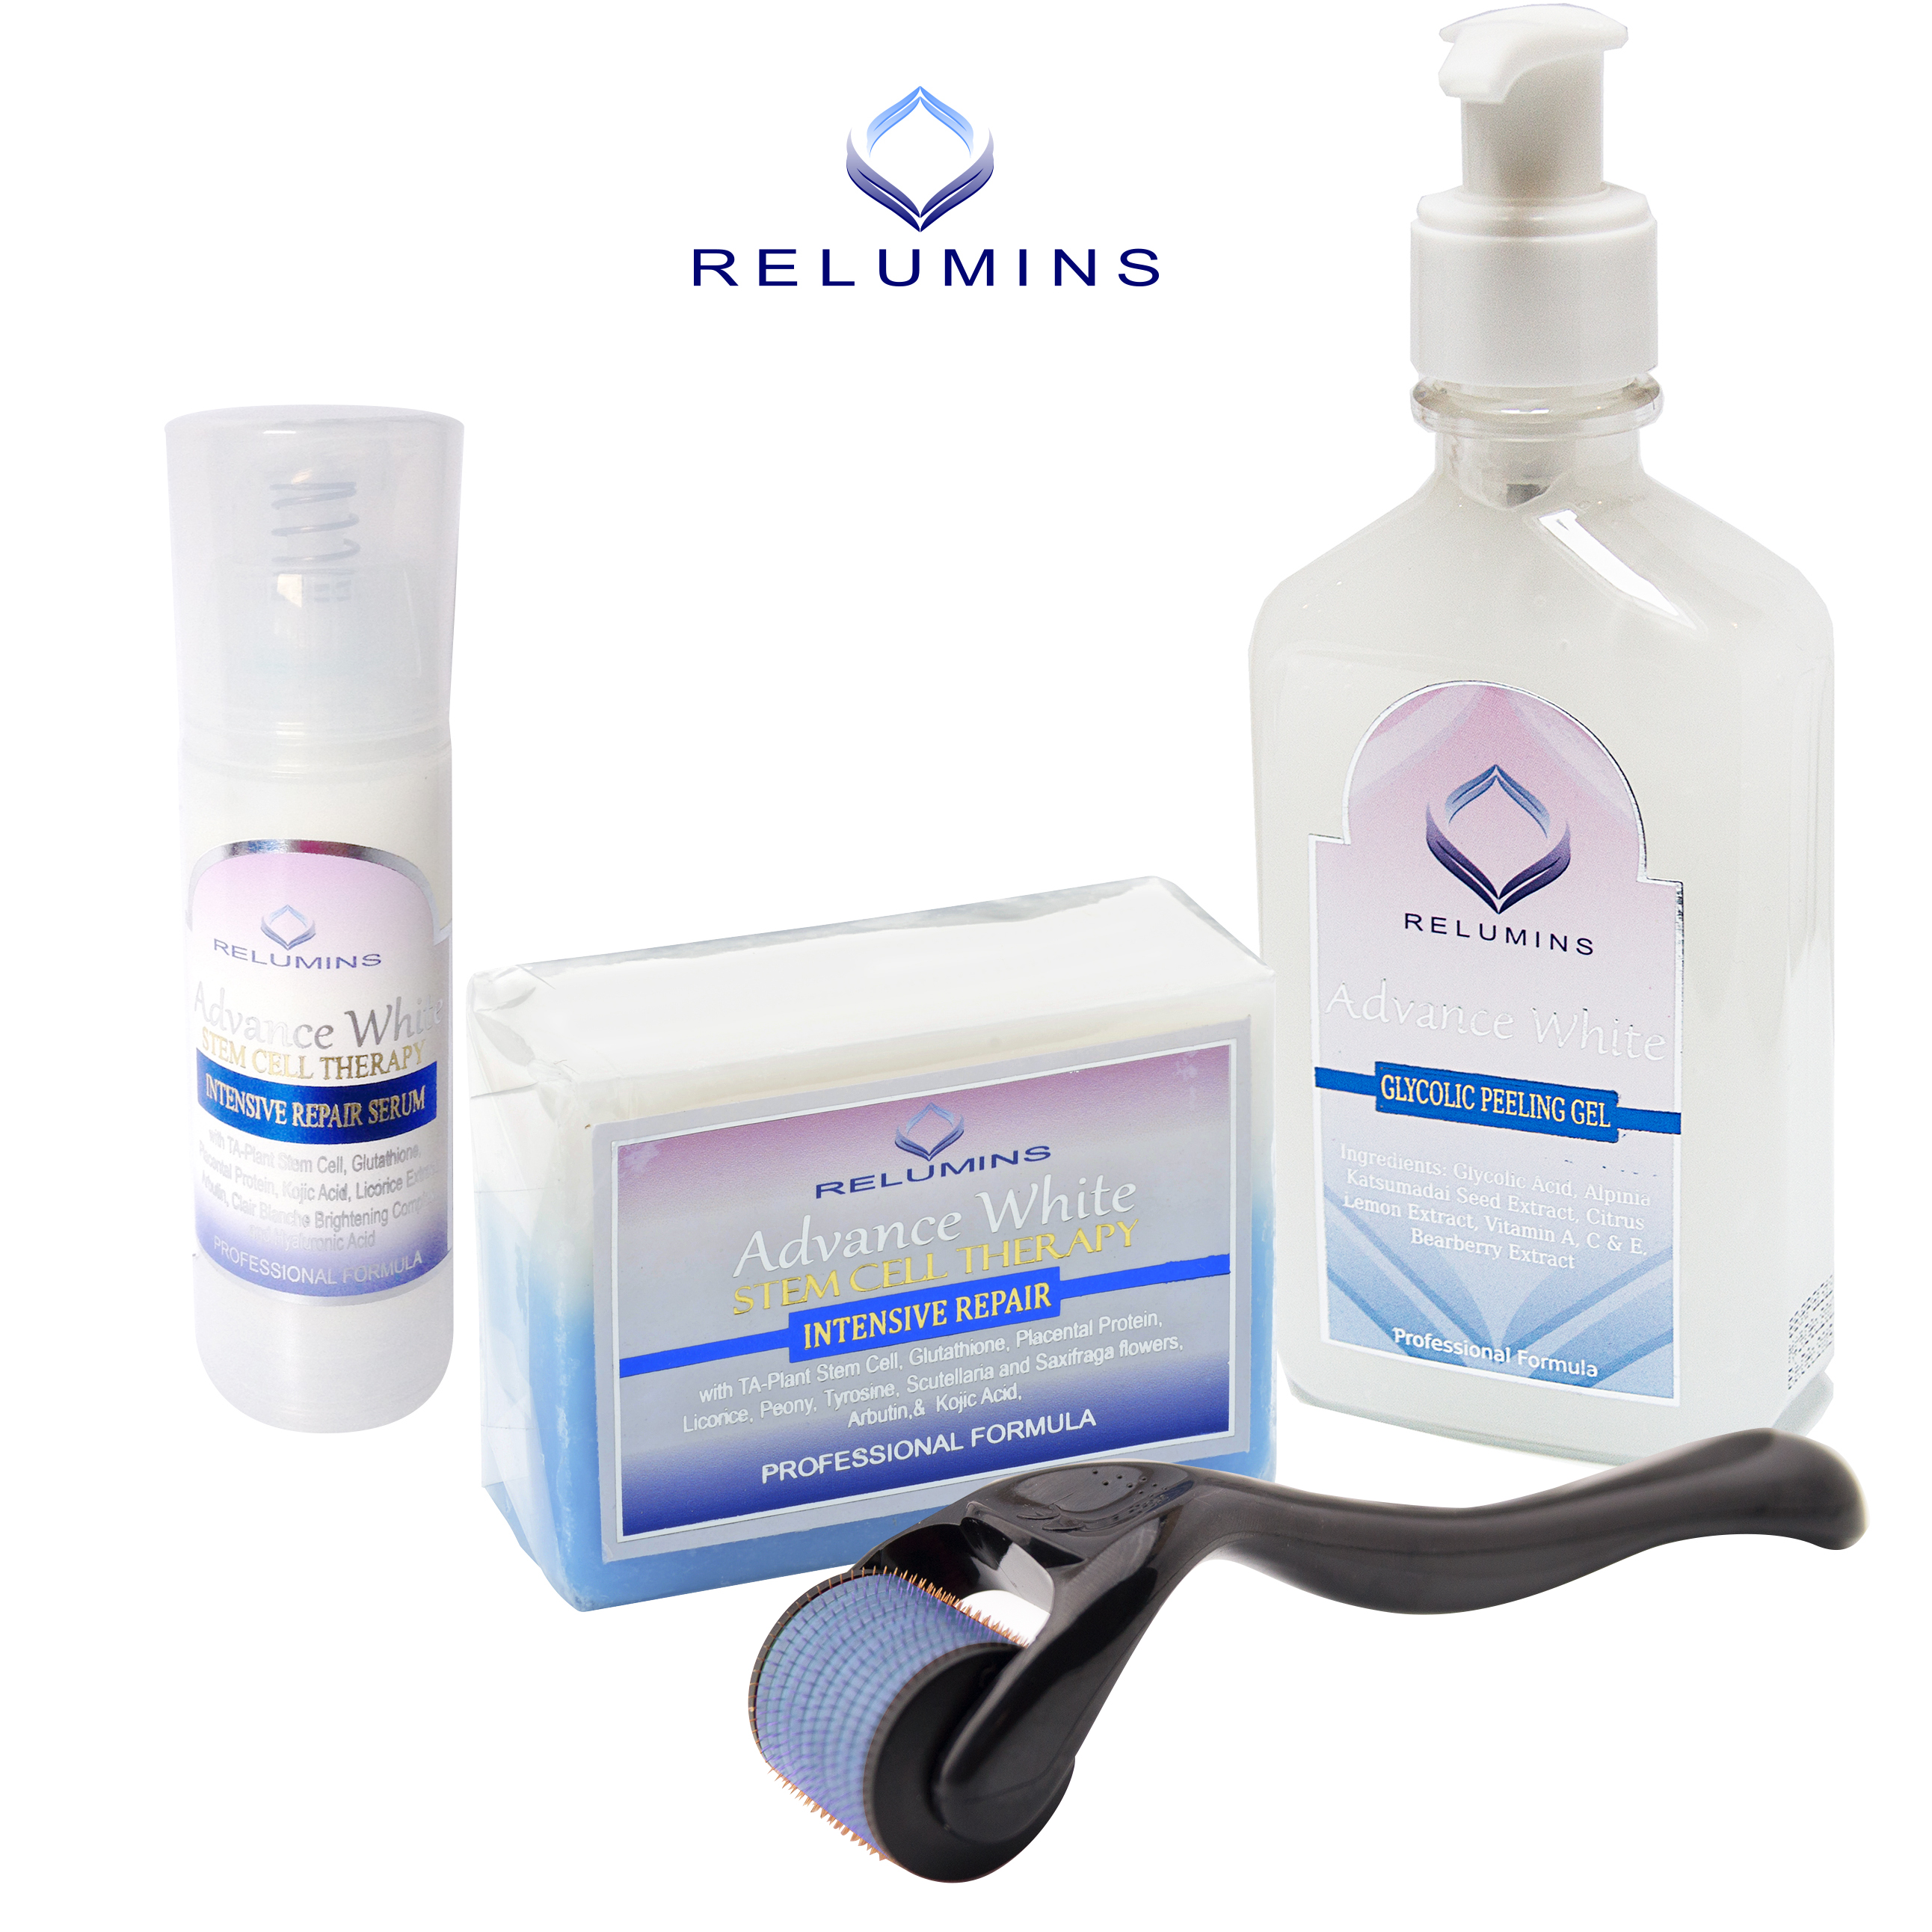 FREE DermRoller with Authentic Relumins Advance White Acne Scar, Dark Spot & Melasma Treatment Set